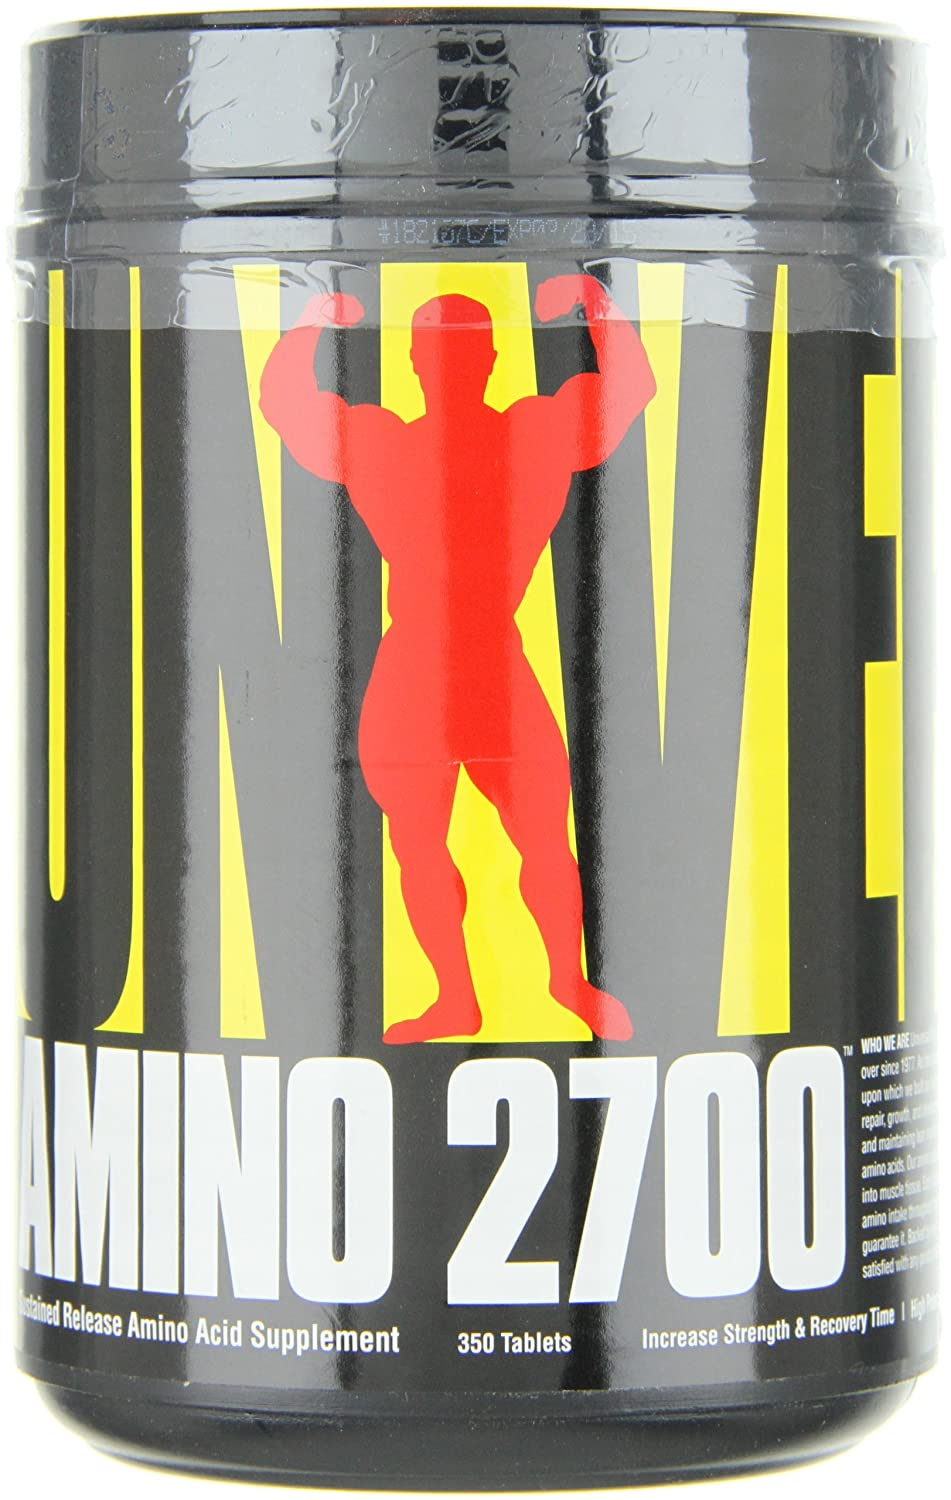 Buy Universal Nutrition Amino 2700 350 Tablets Online At Low Prices 6000 Dymatize 500 Tabs In India